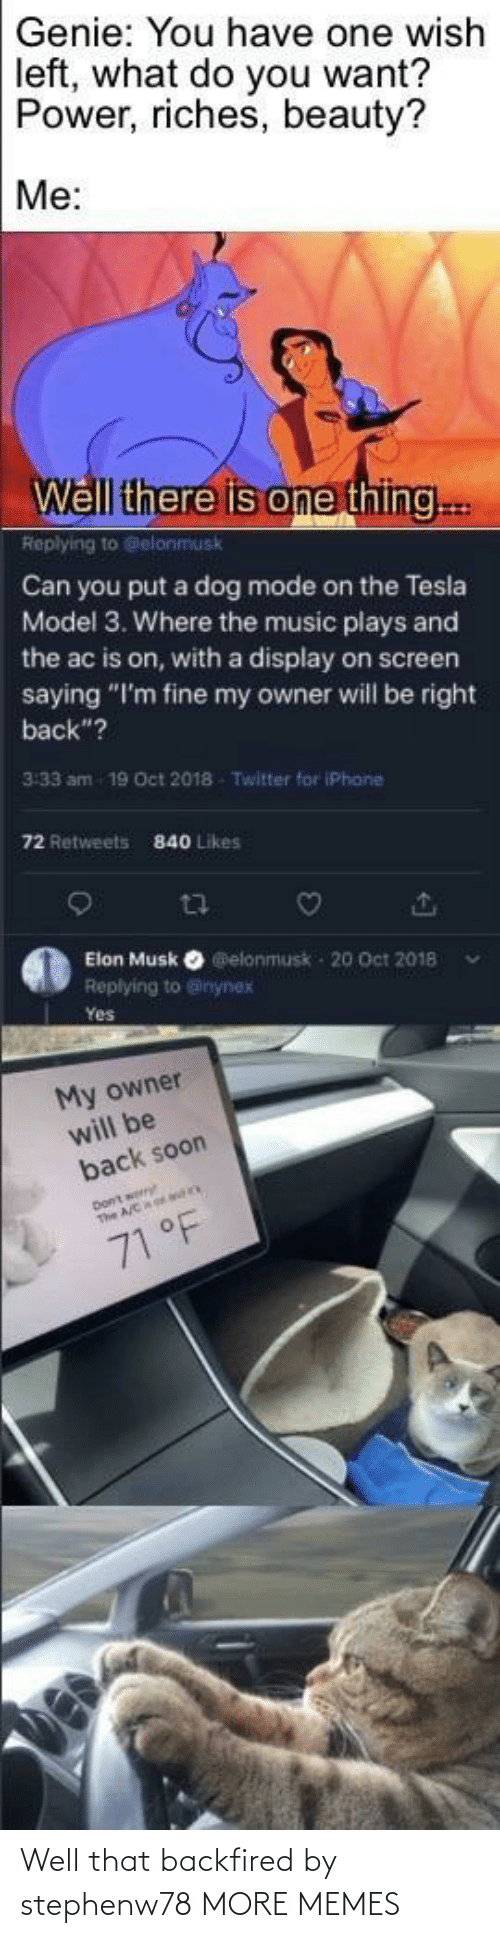 "genie: Genie: You have one wish  left, what do you want?  Power, riches, beauty?  Me:  Well there is one thing..  Replying to Gelonmusk  Can you put a dog mode on the Tesla  Model 3. Where the music plays and  the ac is on, with a display on screen  saying ""I'm fine my owner will be right  back""?  3:33 am  19 Oct 2018  Twitter for iPhane  72 Retweets  840 Likes  Elon Musk O elonmusk - 20 Oct 2018  Replying to @inynex  Yes  My owner  will be  back soon  71 °F Well that backfired by stephenw78 MORE MEMES"